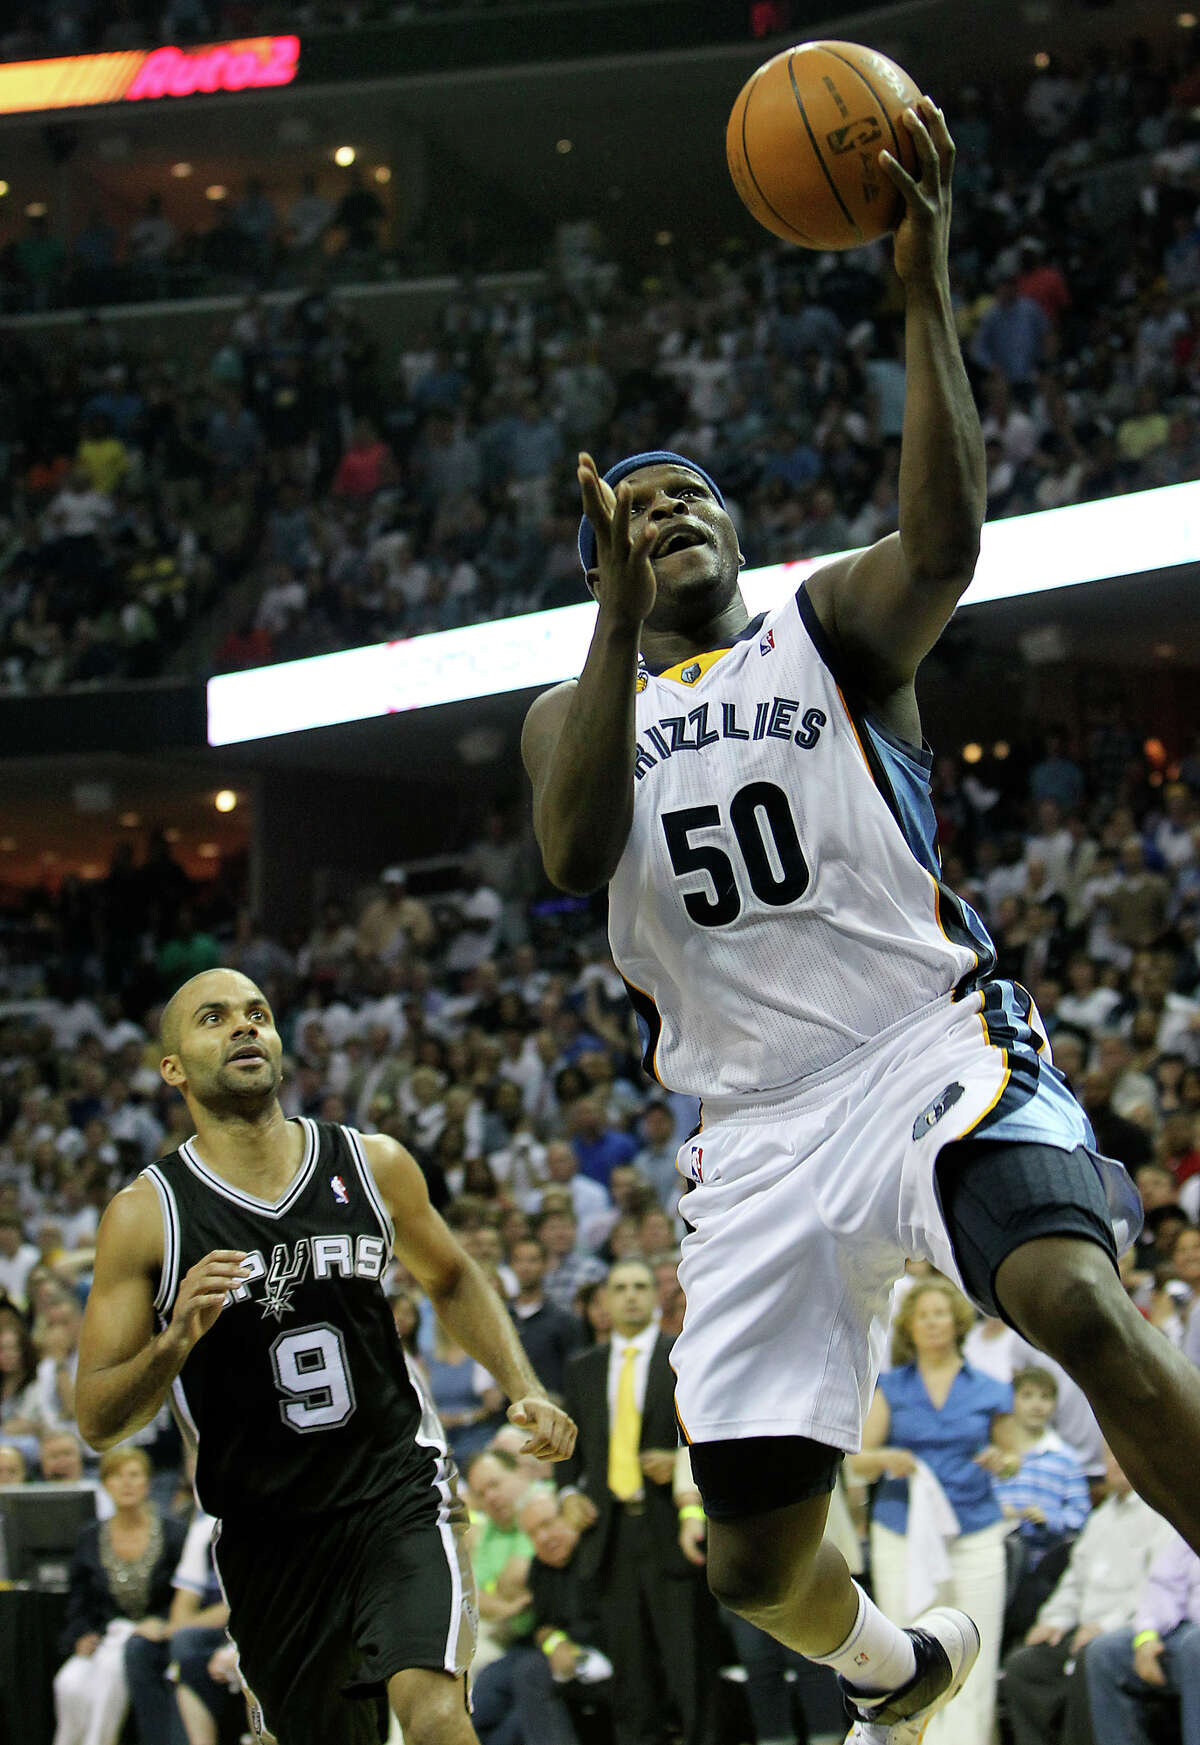 Memphis Grizzlies' Zach Randolph goes in for a score past Spurs' Tony Parker in the second half in Game 6 of the first round of the Western Conference playoffs in 2011.